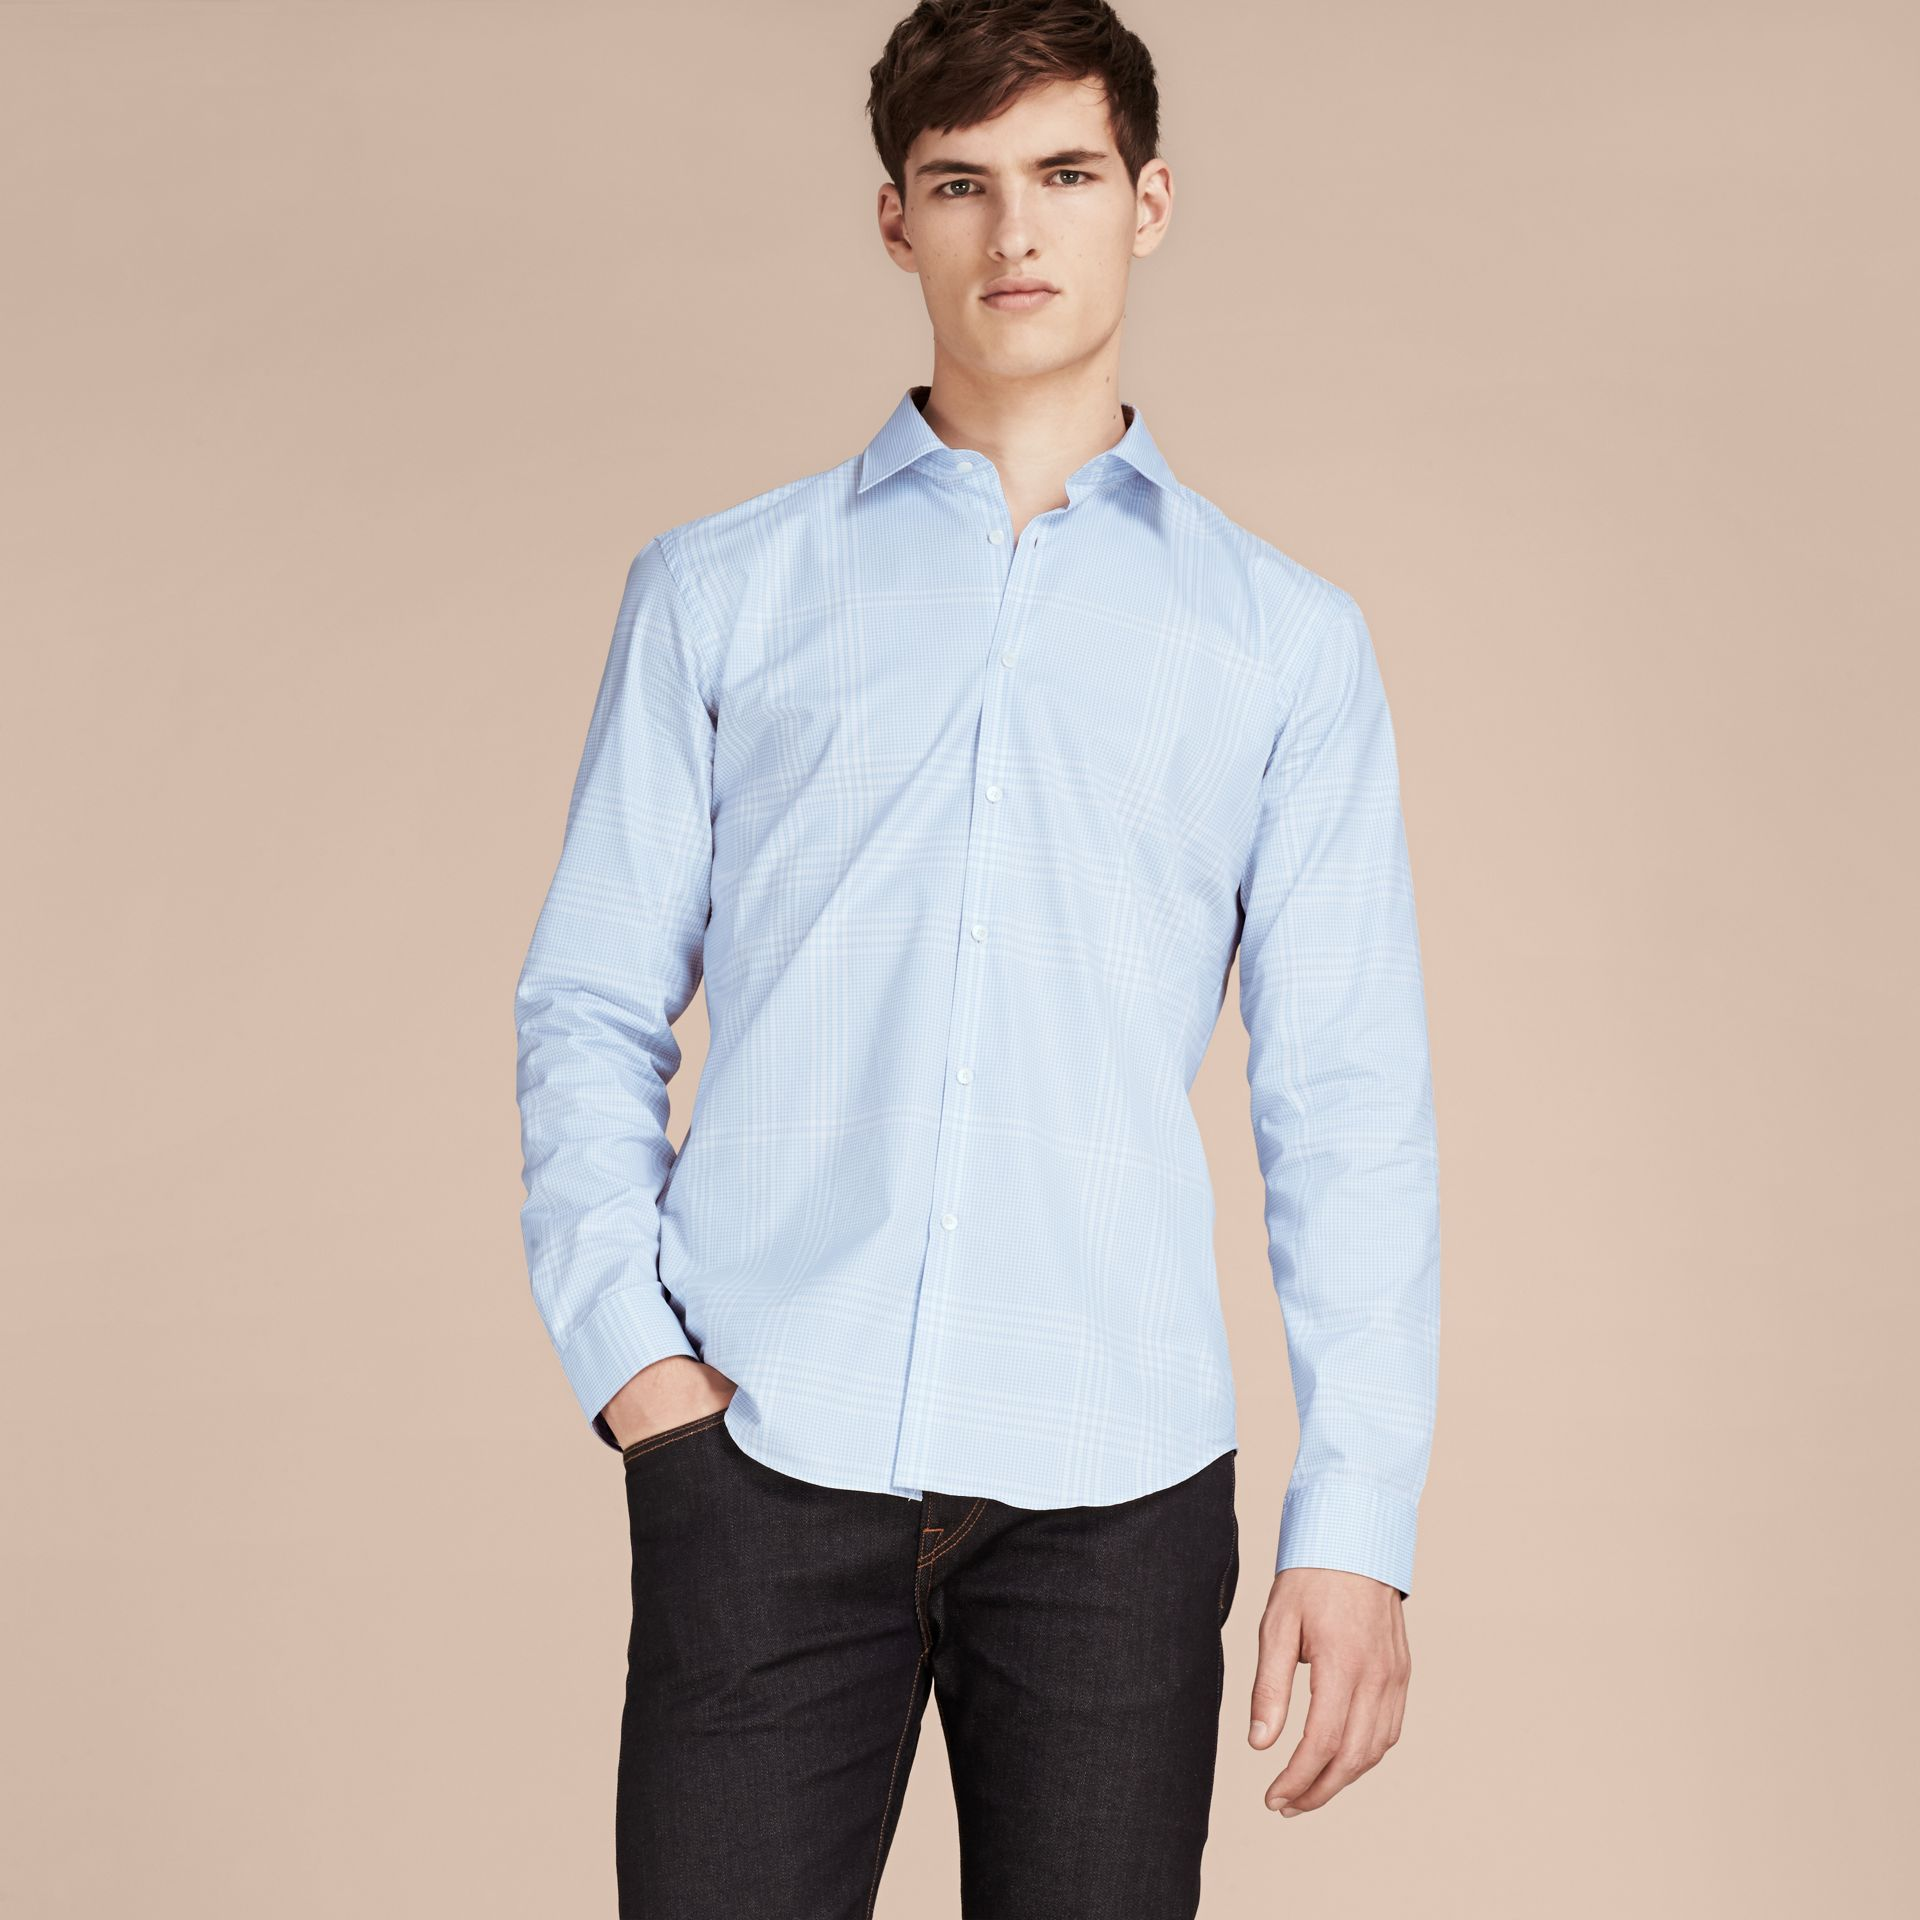 City blue Check Cotton Shirt City Blue - gallery image 6